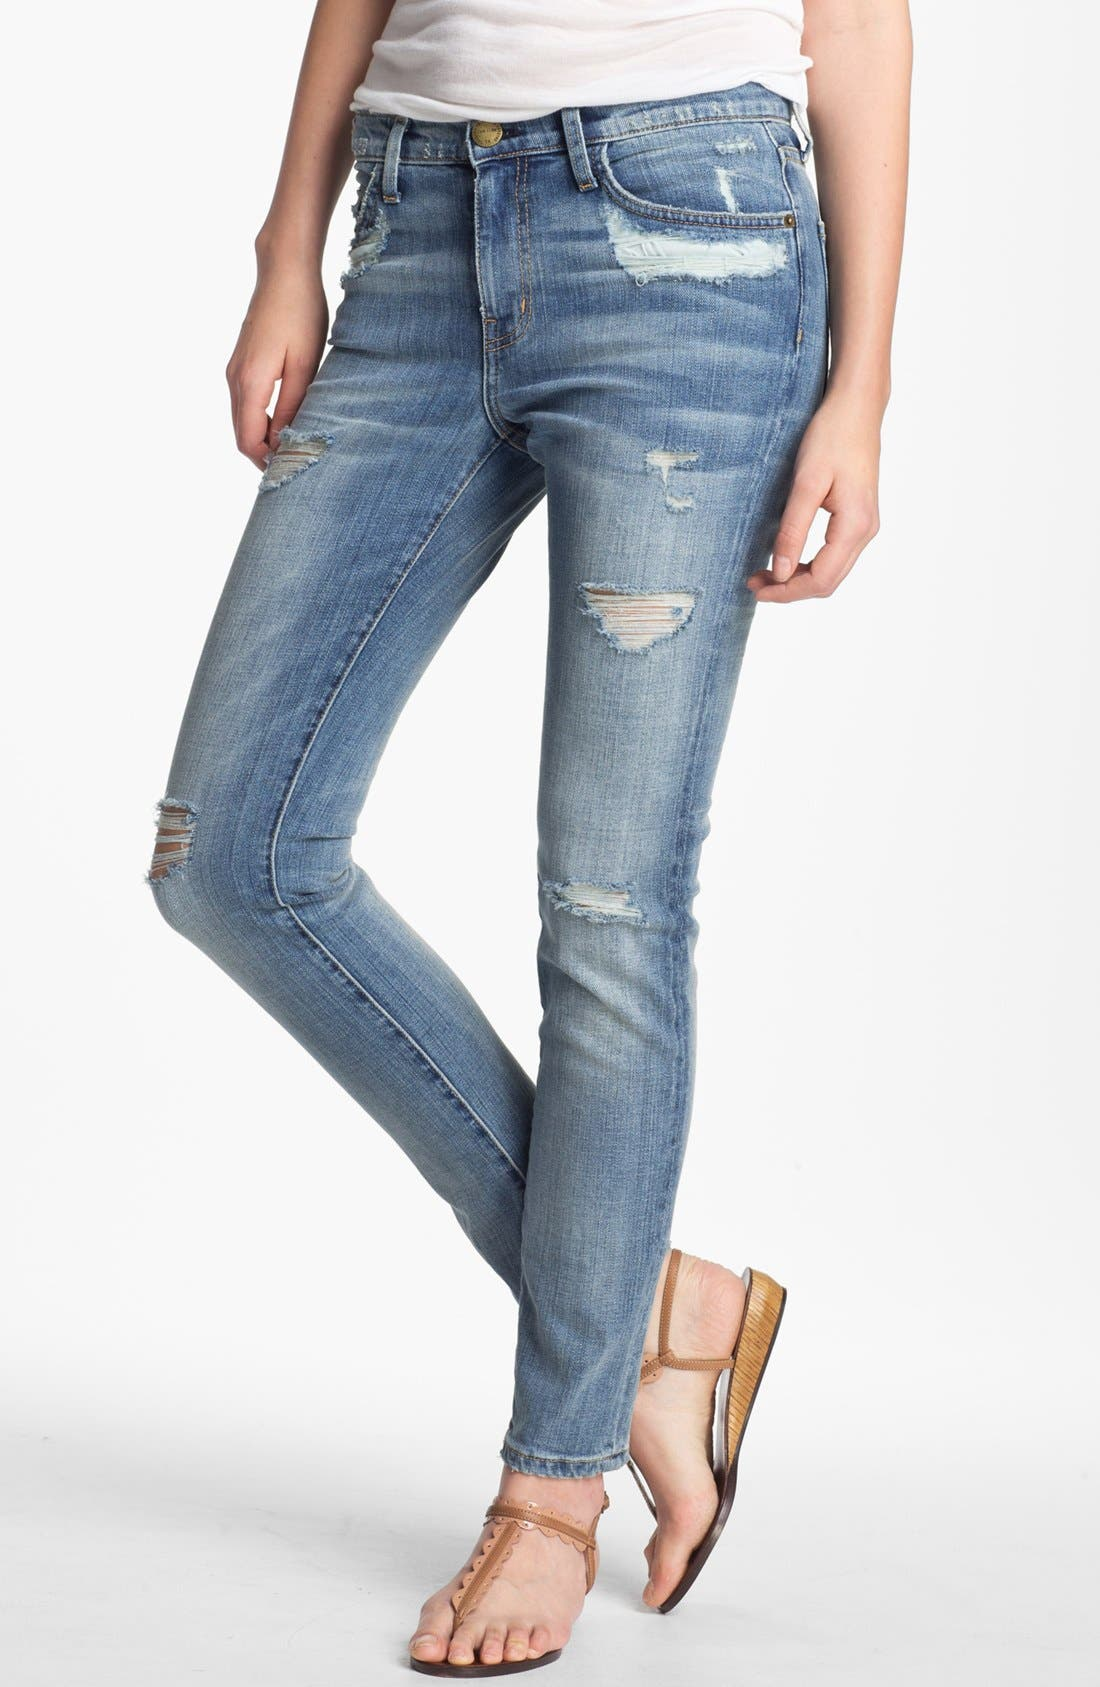 Alternate Image 1 Selected - Current/Elliott 'The Stiletto' Distressed Stretch Jeans (Shipwreck Destroy)